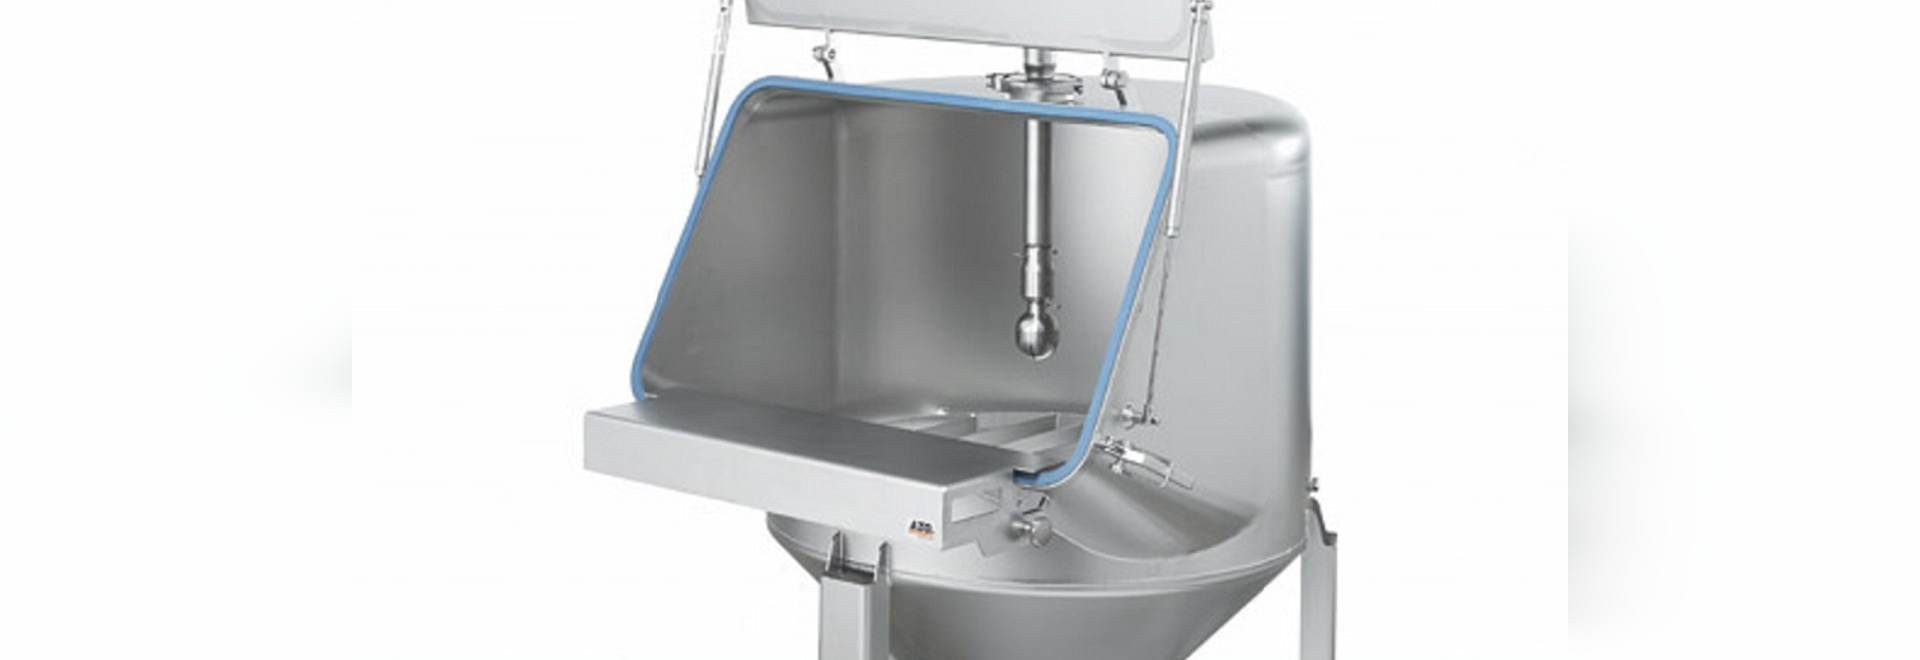 AZO Feeding hopper in hygienic design